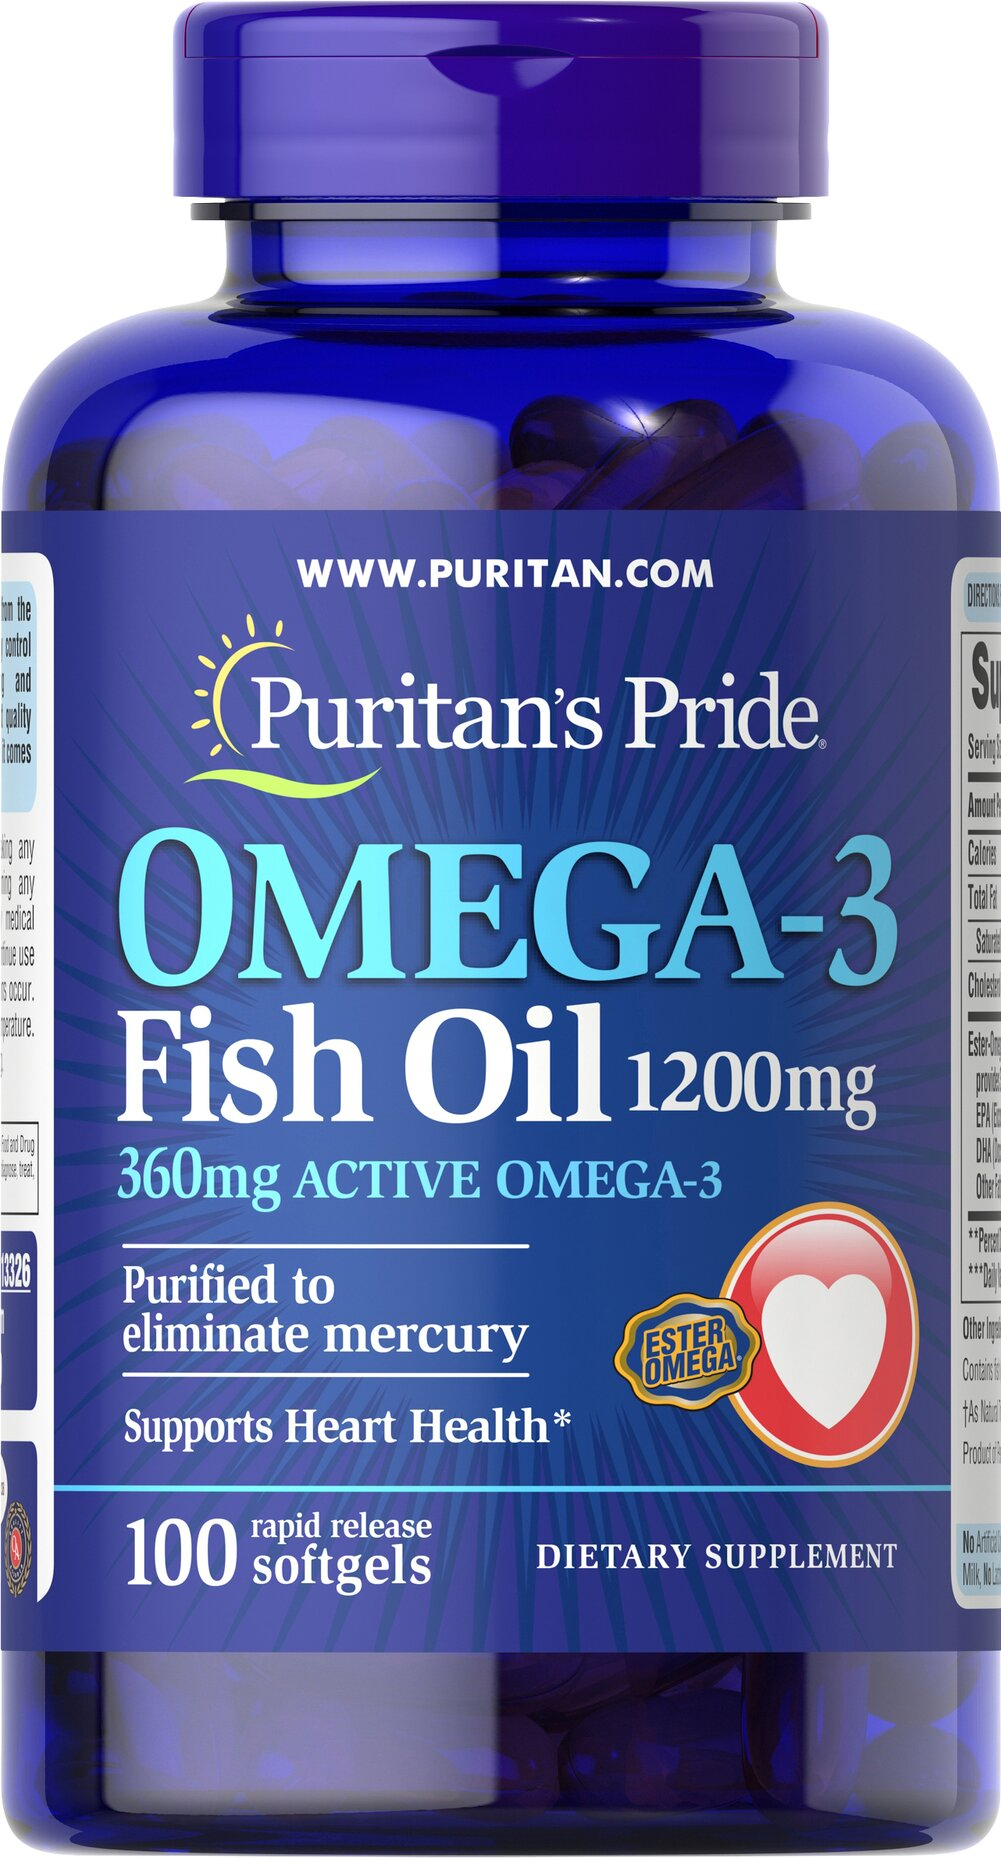 Omega-3 Fish Oil 1200 mg (360 mg Active Omega-3)  100 Softgels 1200 mg $14.49